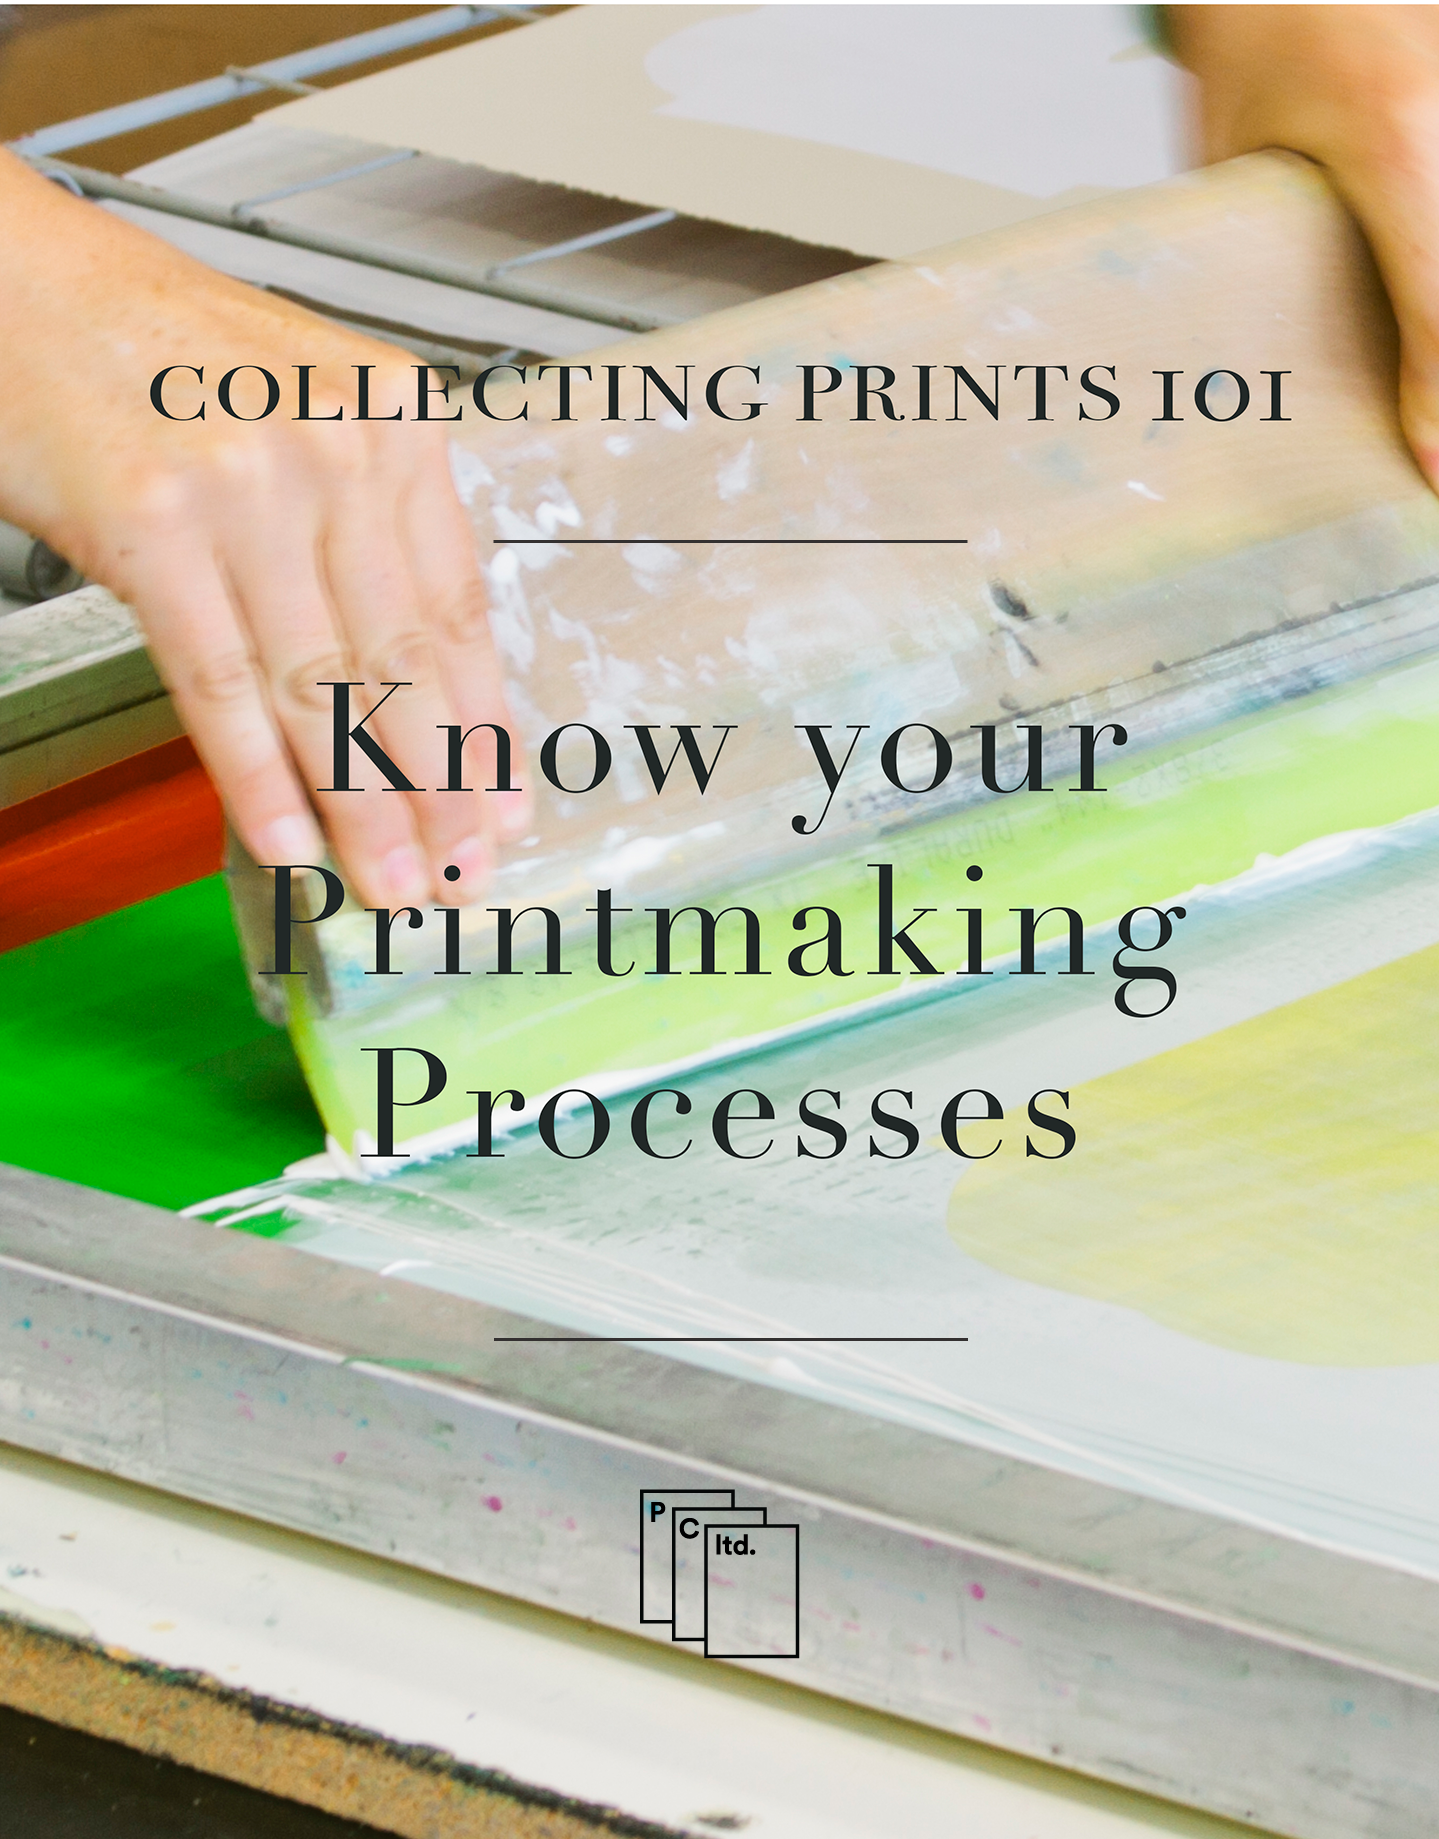 Collecting Prints 101 with Print Club ltd. Knowing your Printmaking Processes